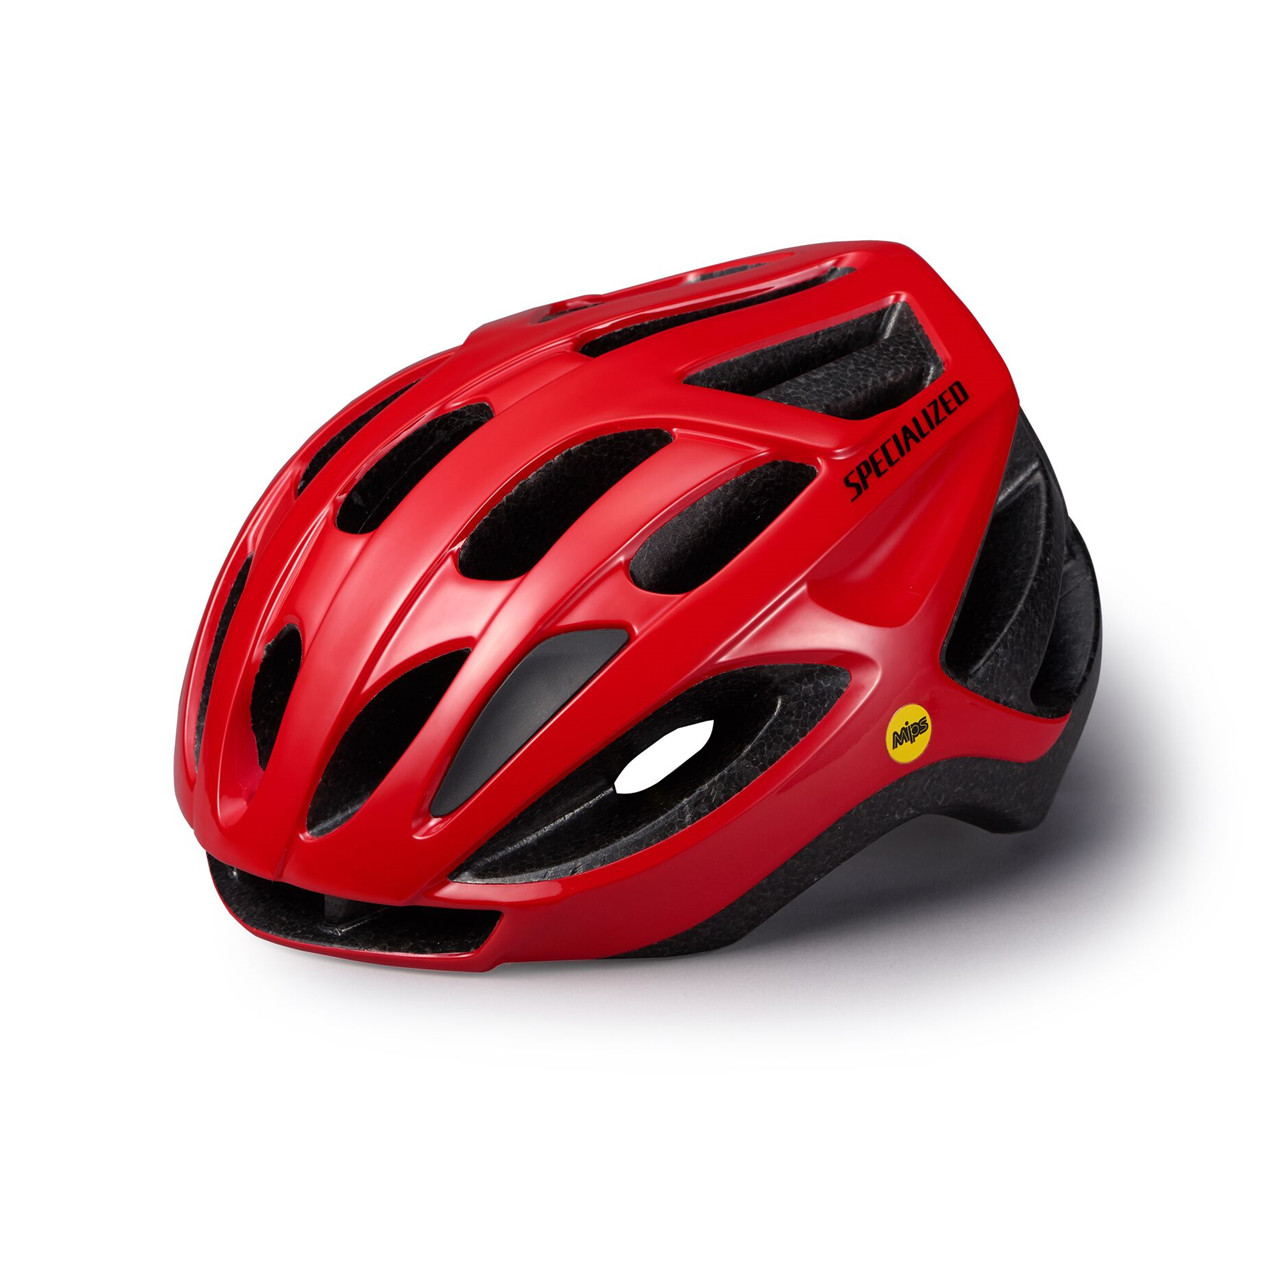 Cykler Specialized Align Angi Mips (Gloss Red, S/M) Mærker